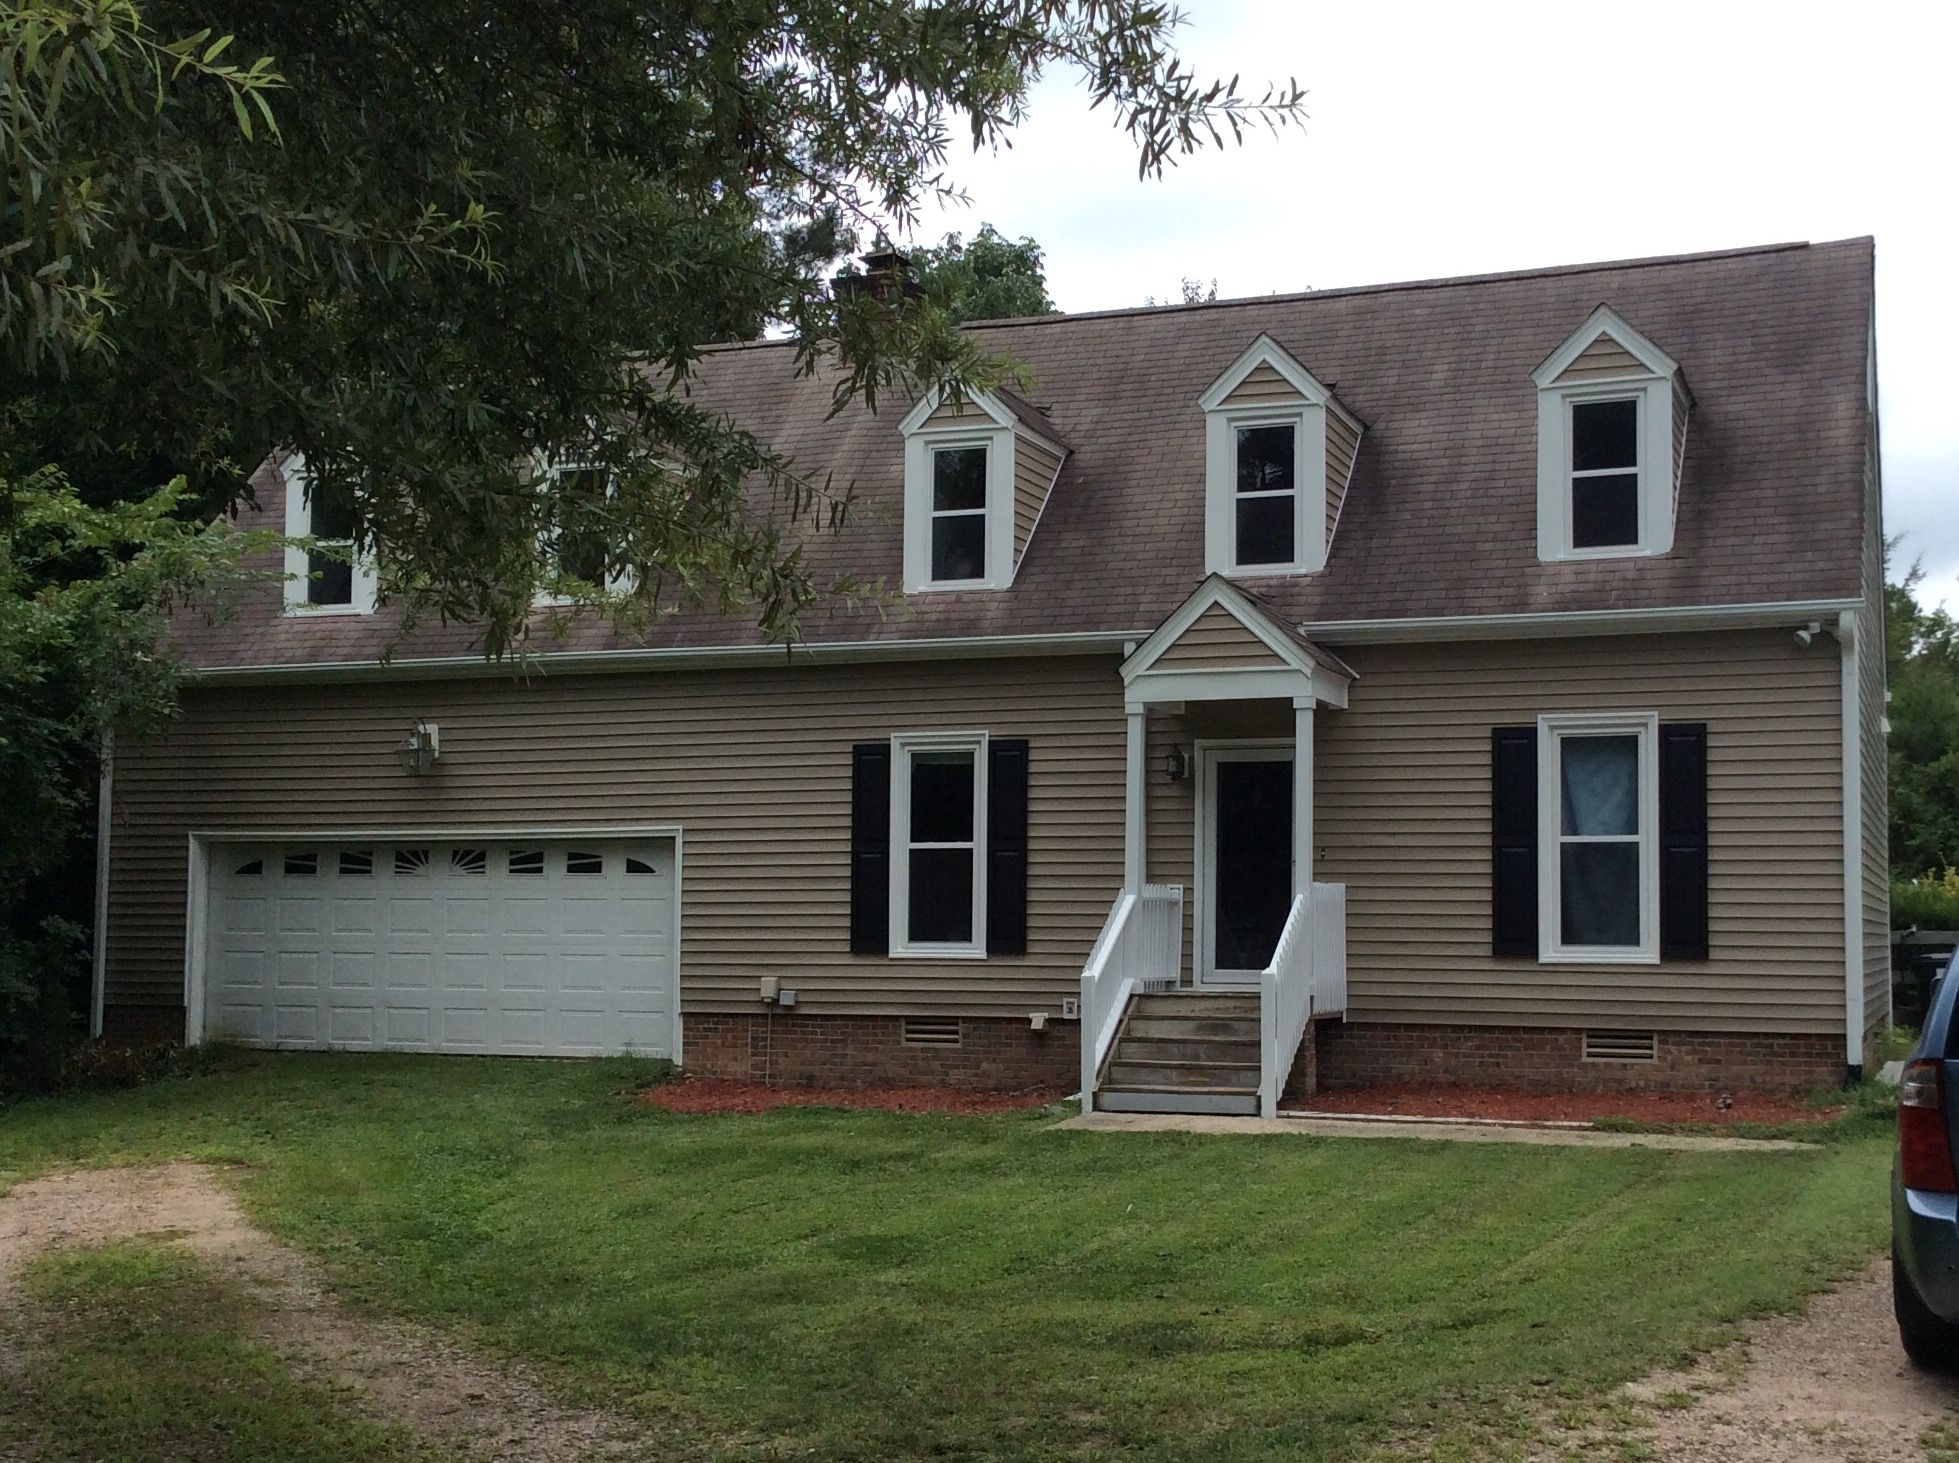 New alside conquest clapboard vinyl siding in tuscan clay for Exterior vinyl siding